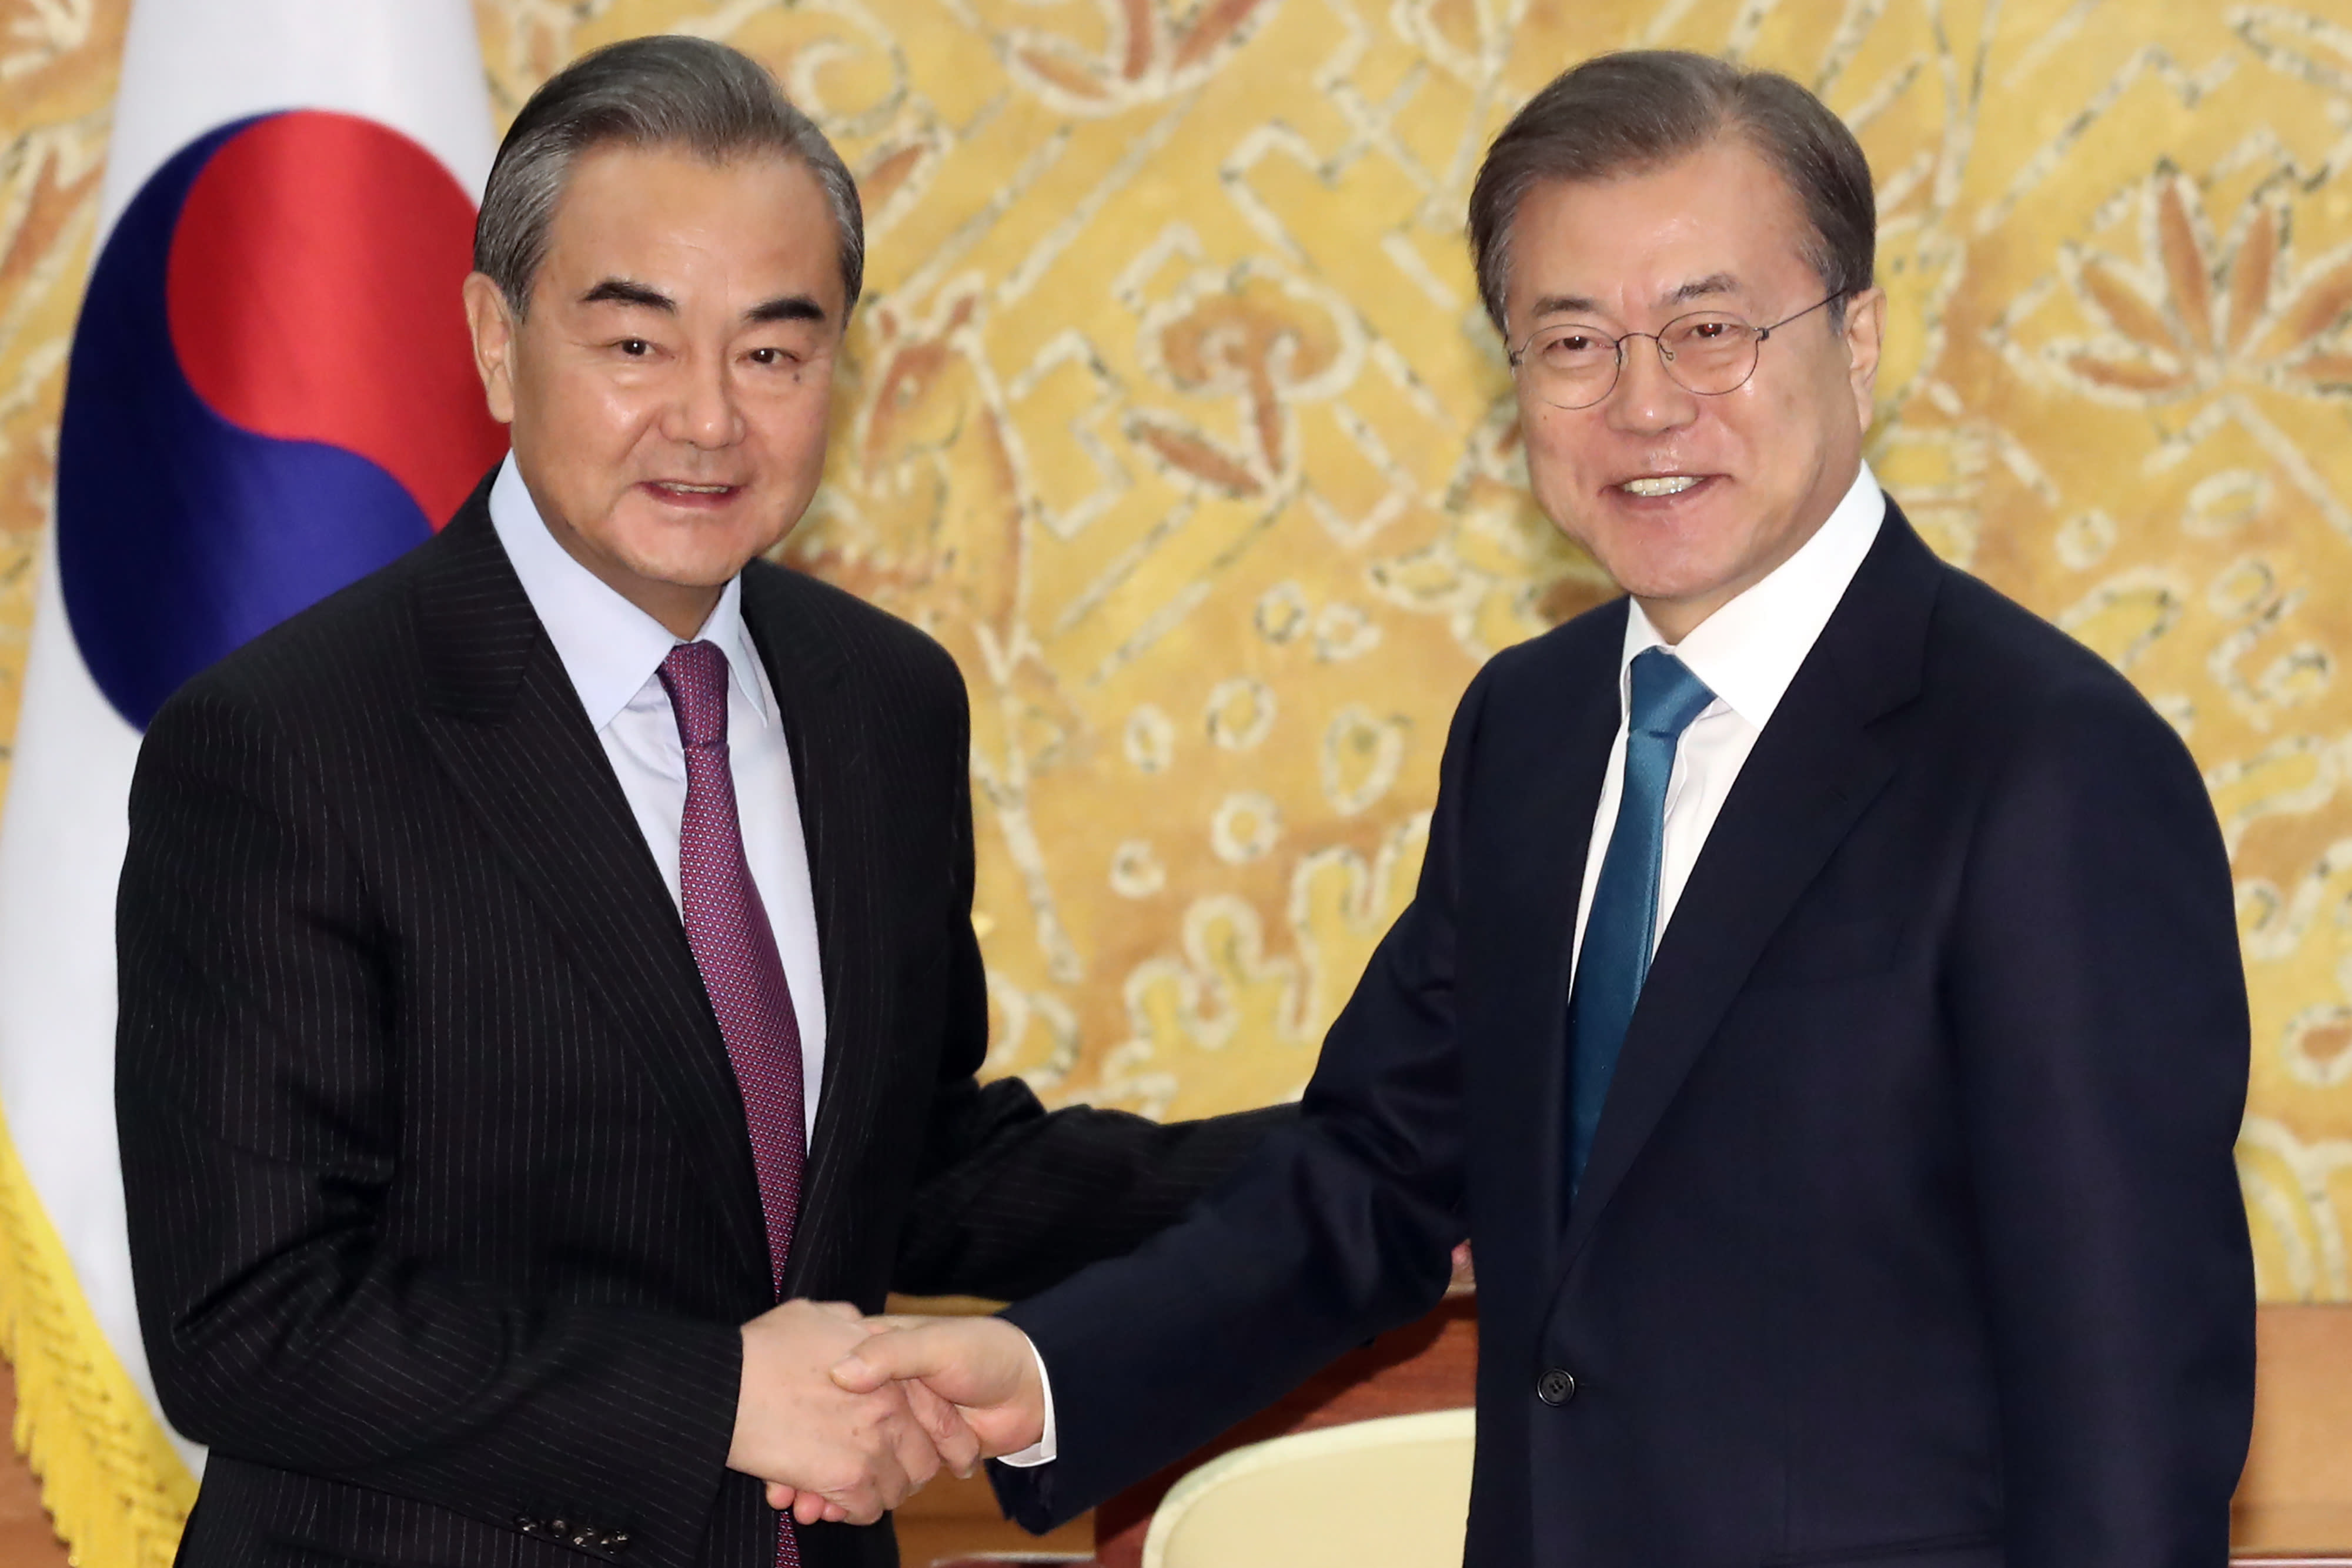 South Korean President Moon Jae-in, right, shakes hands with Chinese Foreign Minister Wang Yi during a meeting at the presidential Blue House in Seoul, South Korea, Thursday, Dec. 5, 2019. Wang arrived in South Korea on Wednesday for his first visit in four years amid efforts to patch up relations damaged by Seoul's decision to host a U.S. anti-missile system that Beijing perceives as a security threat. (Lee Jin-wook/Yonhap via AP)